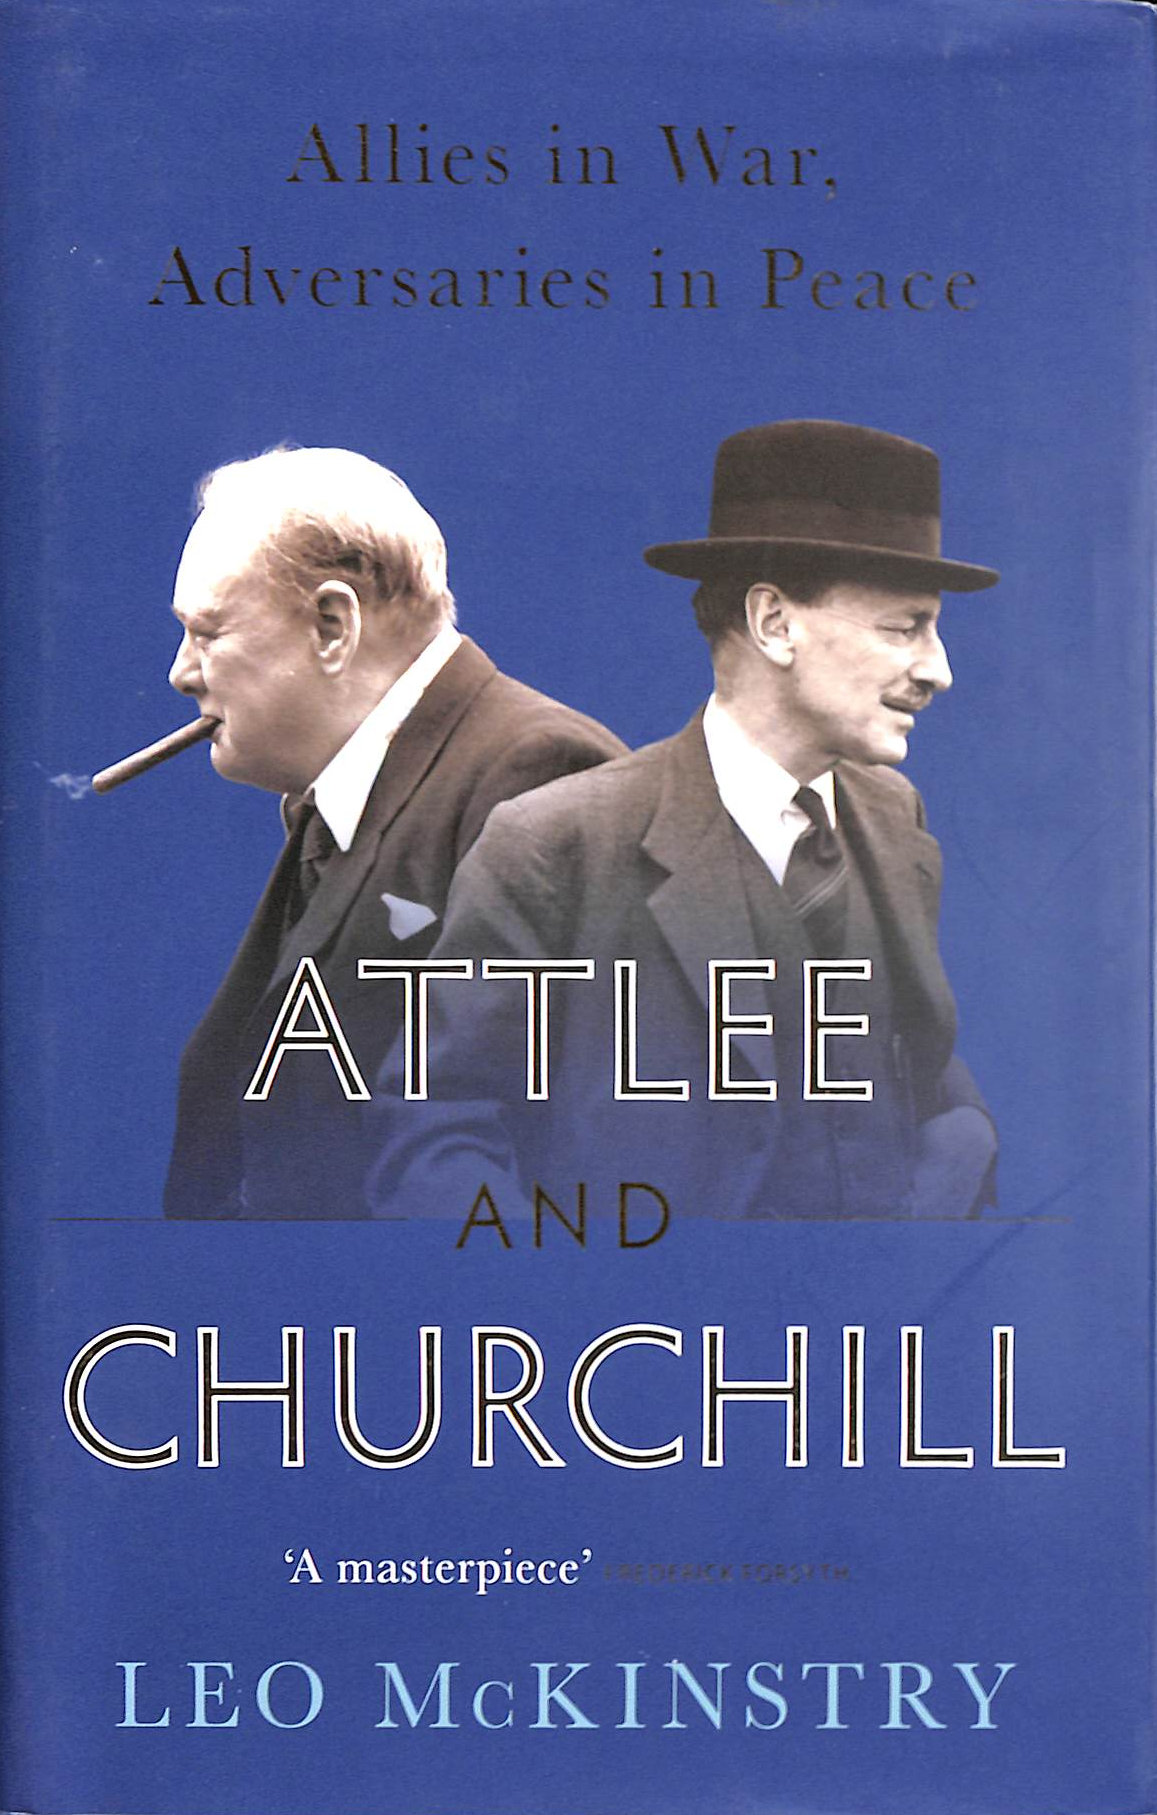 Image for Attlee and Churchill: Allies in War, Adversaries in Peace